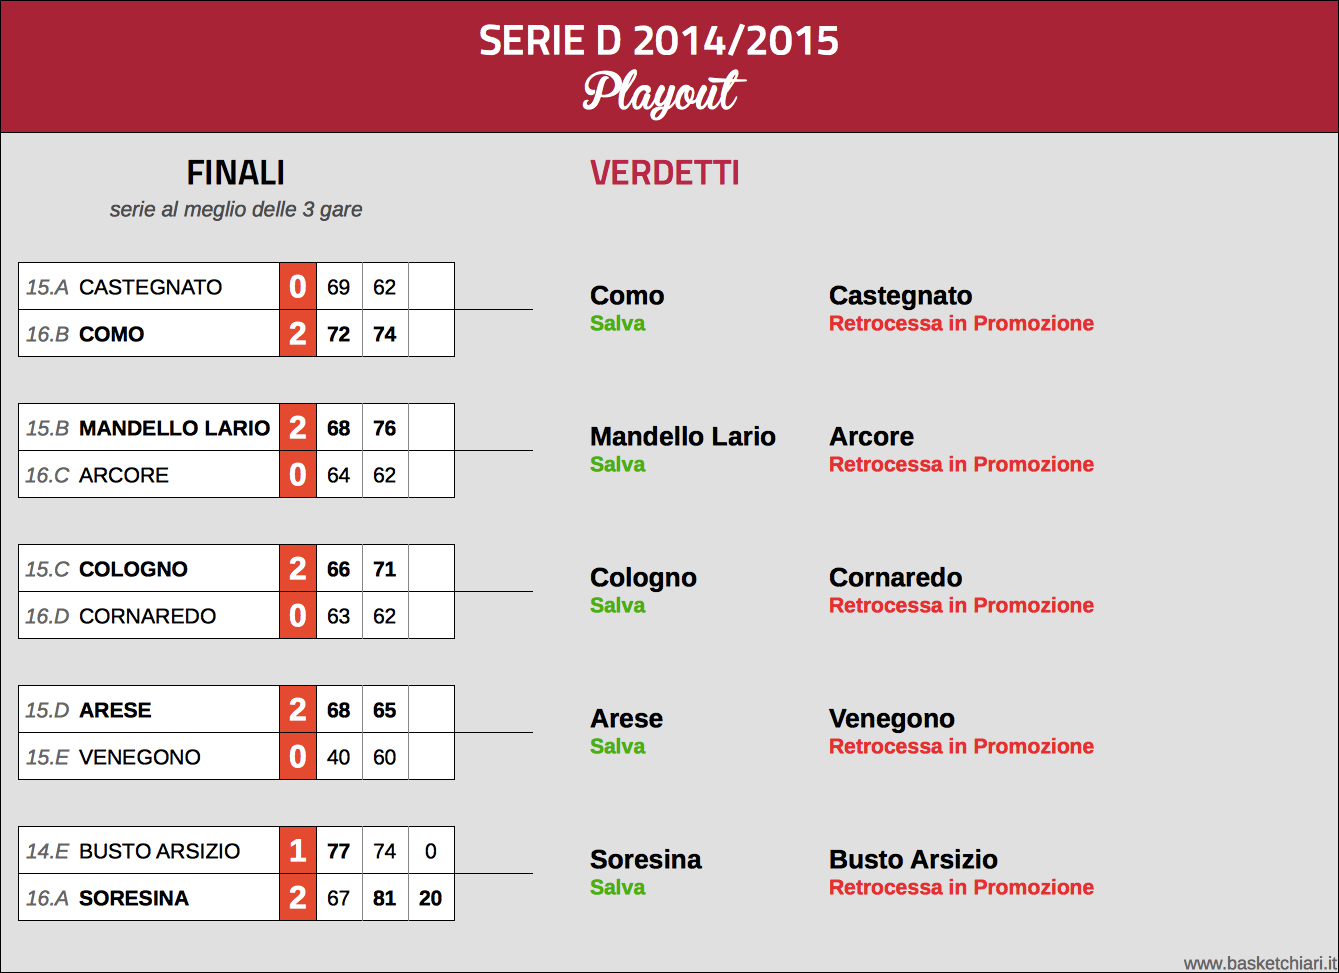 Serie D: Playout 2014/2015